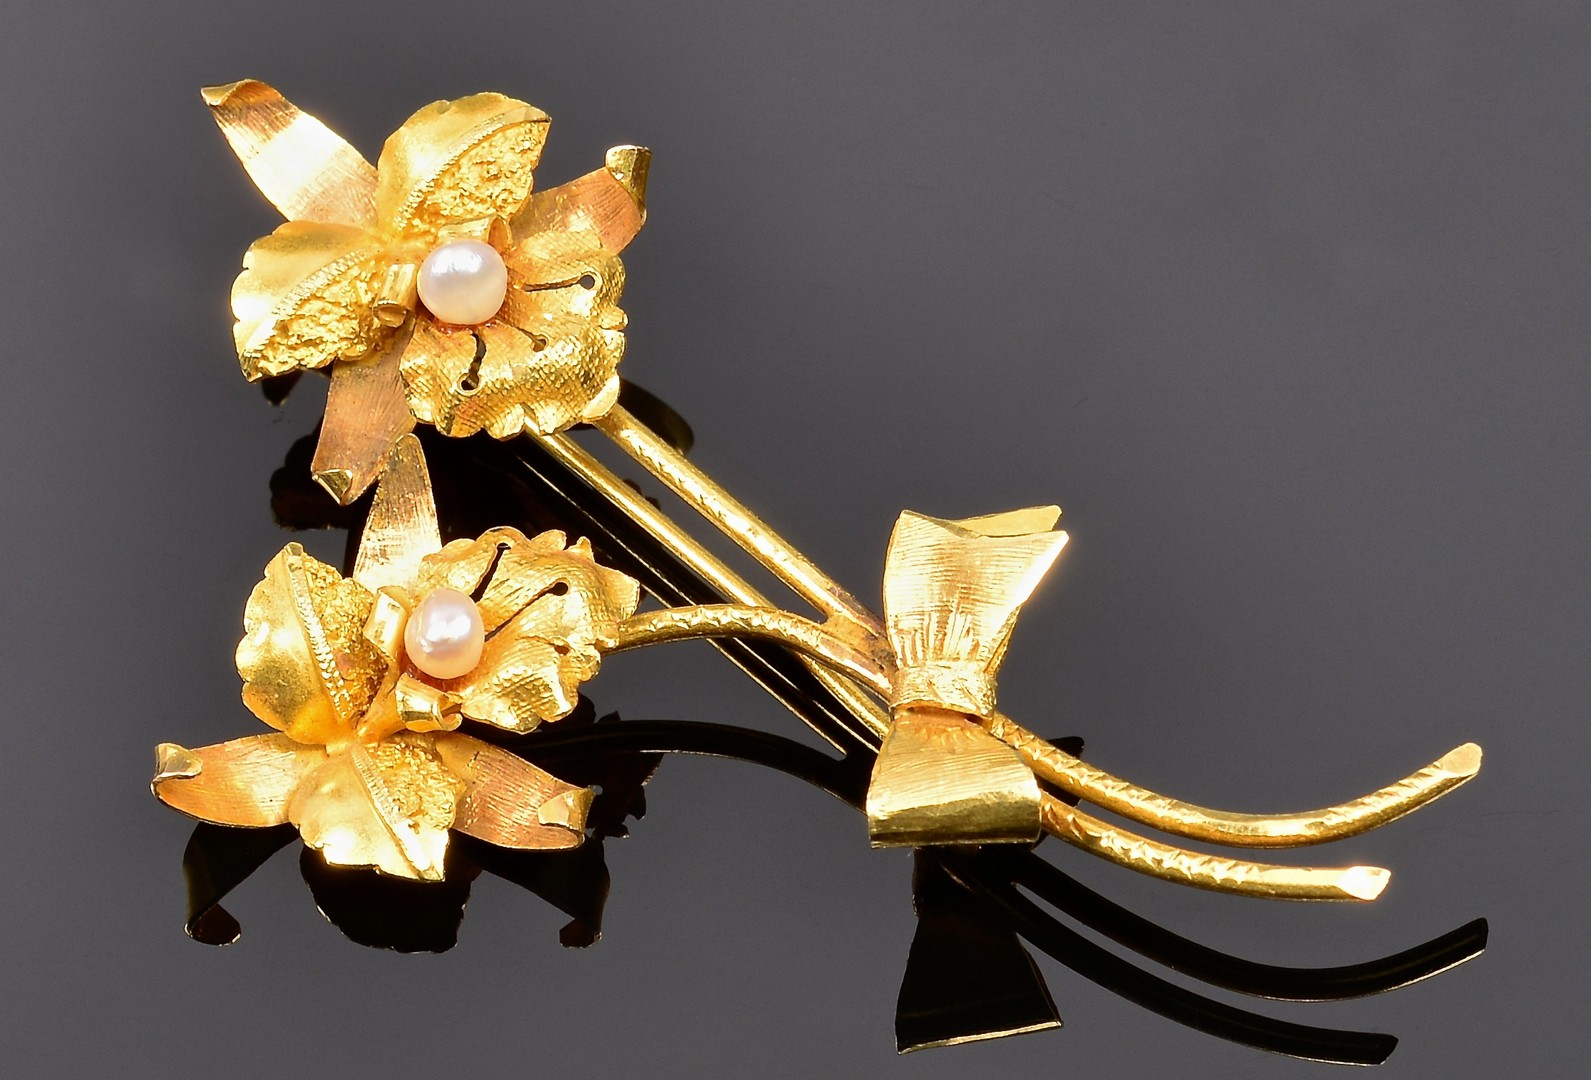 Lot 4010142: 3 14K or 18K Gold Orchid Pins